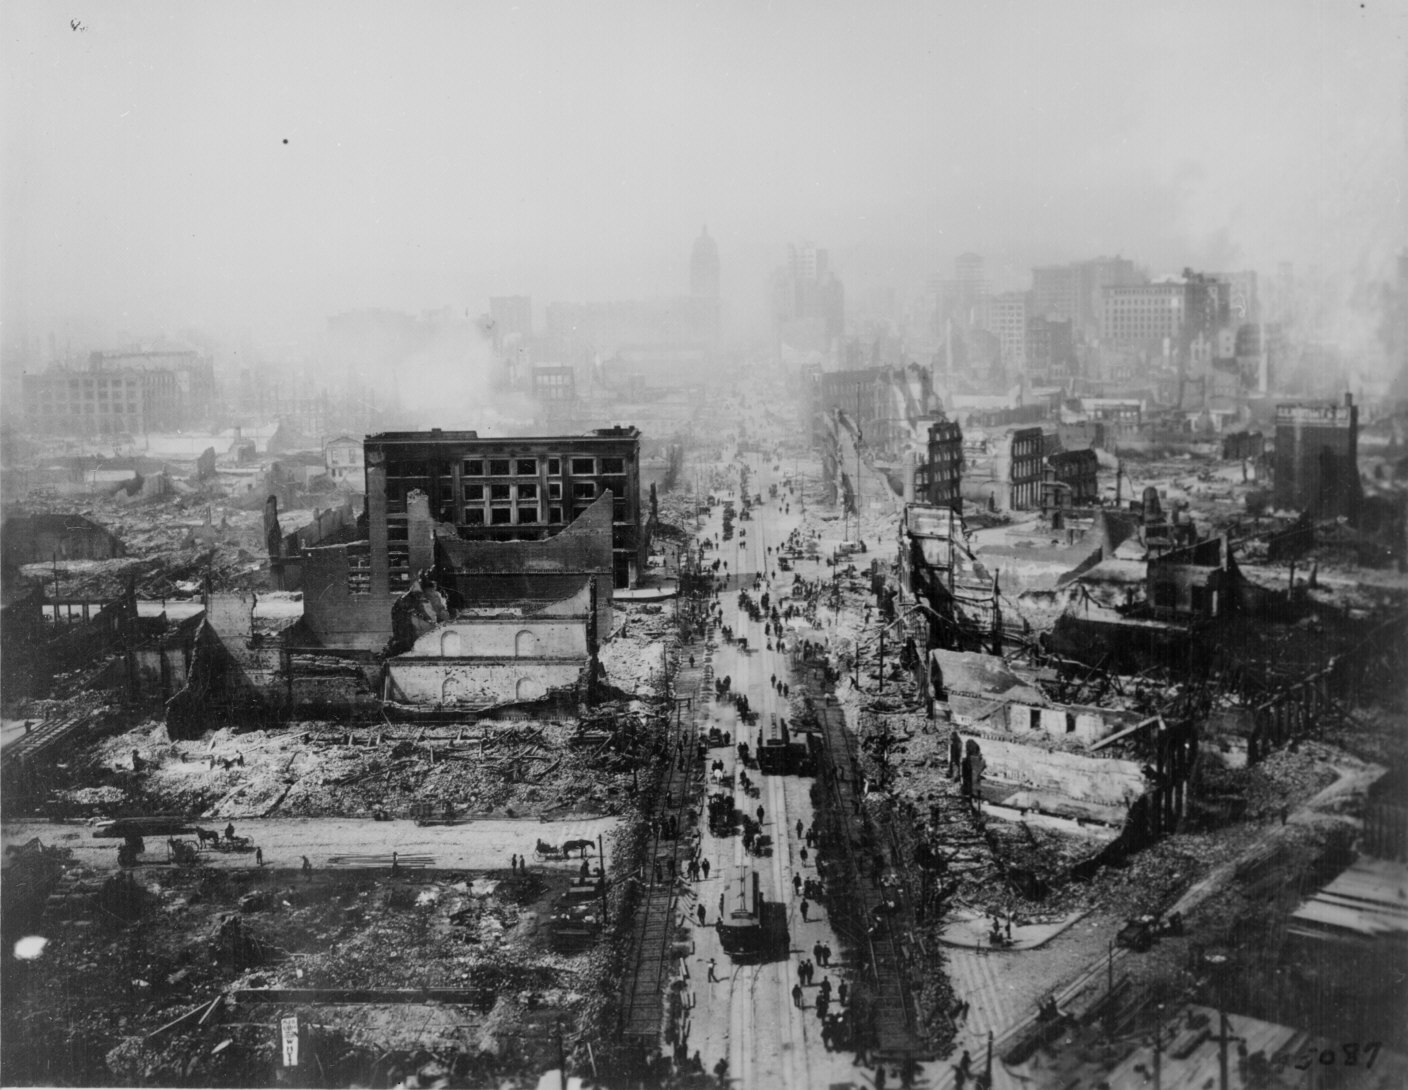 http://upload.wikimedia.org/wikipedia/commons/e/e5/Sanfranciscoearthquake1906.jpg